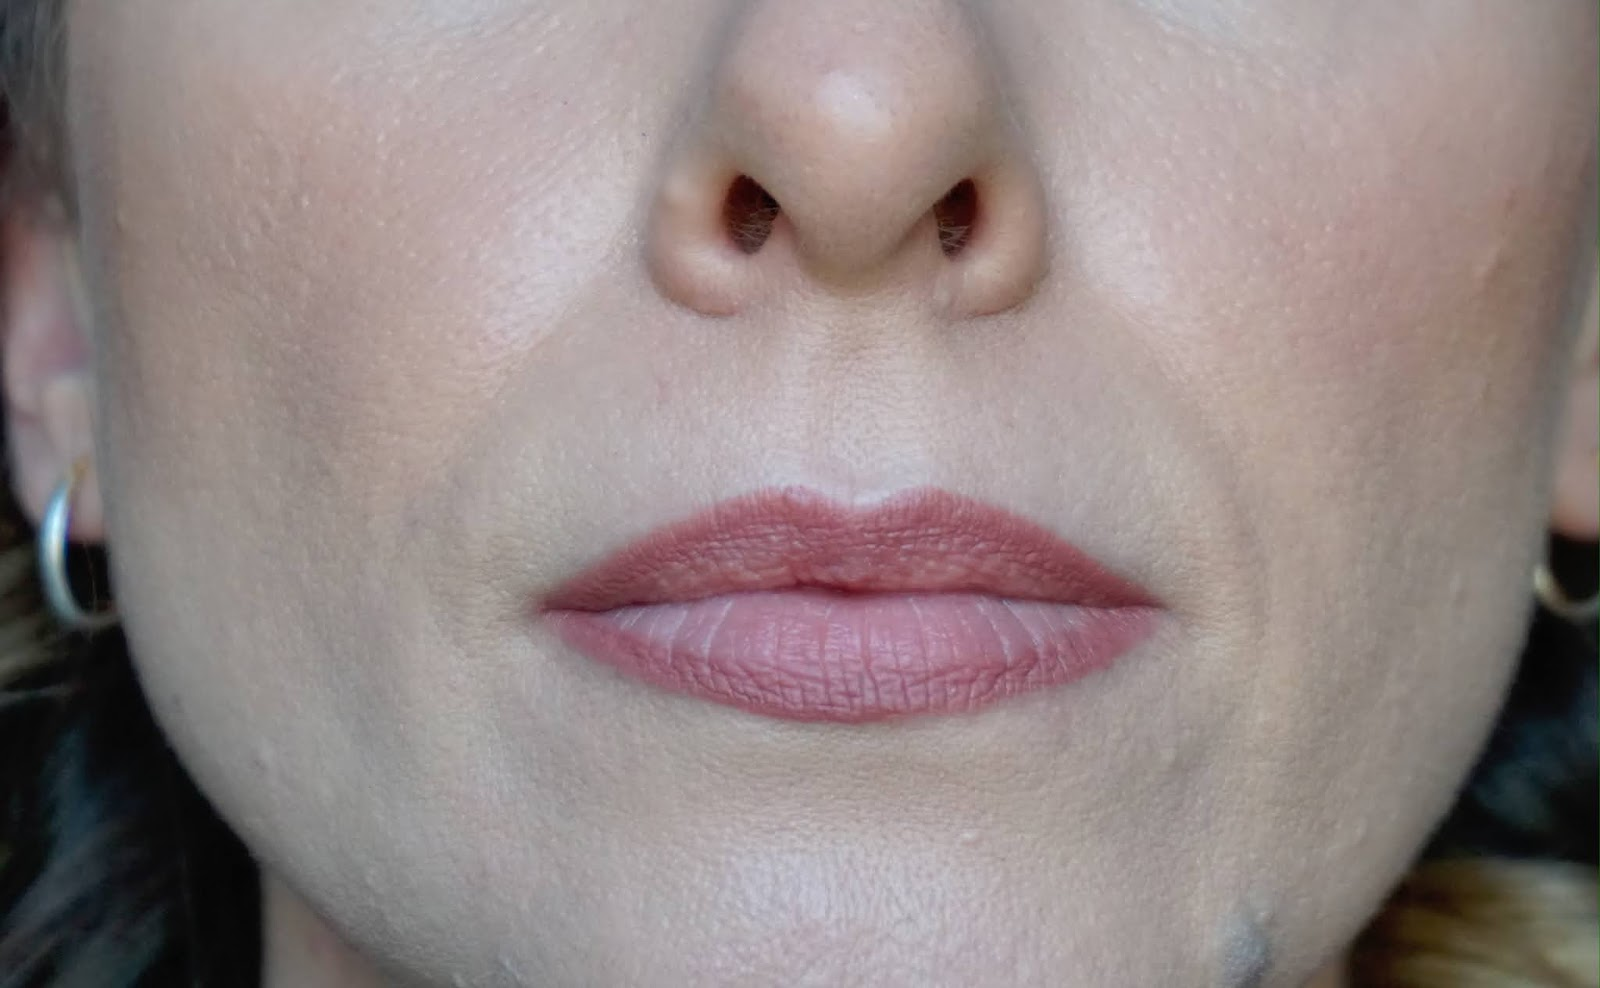 Half of face with lip liner applied to lips